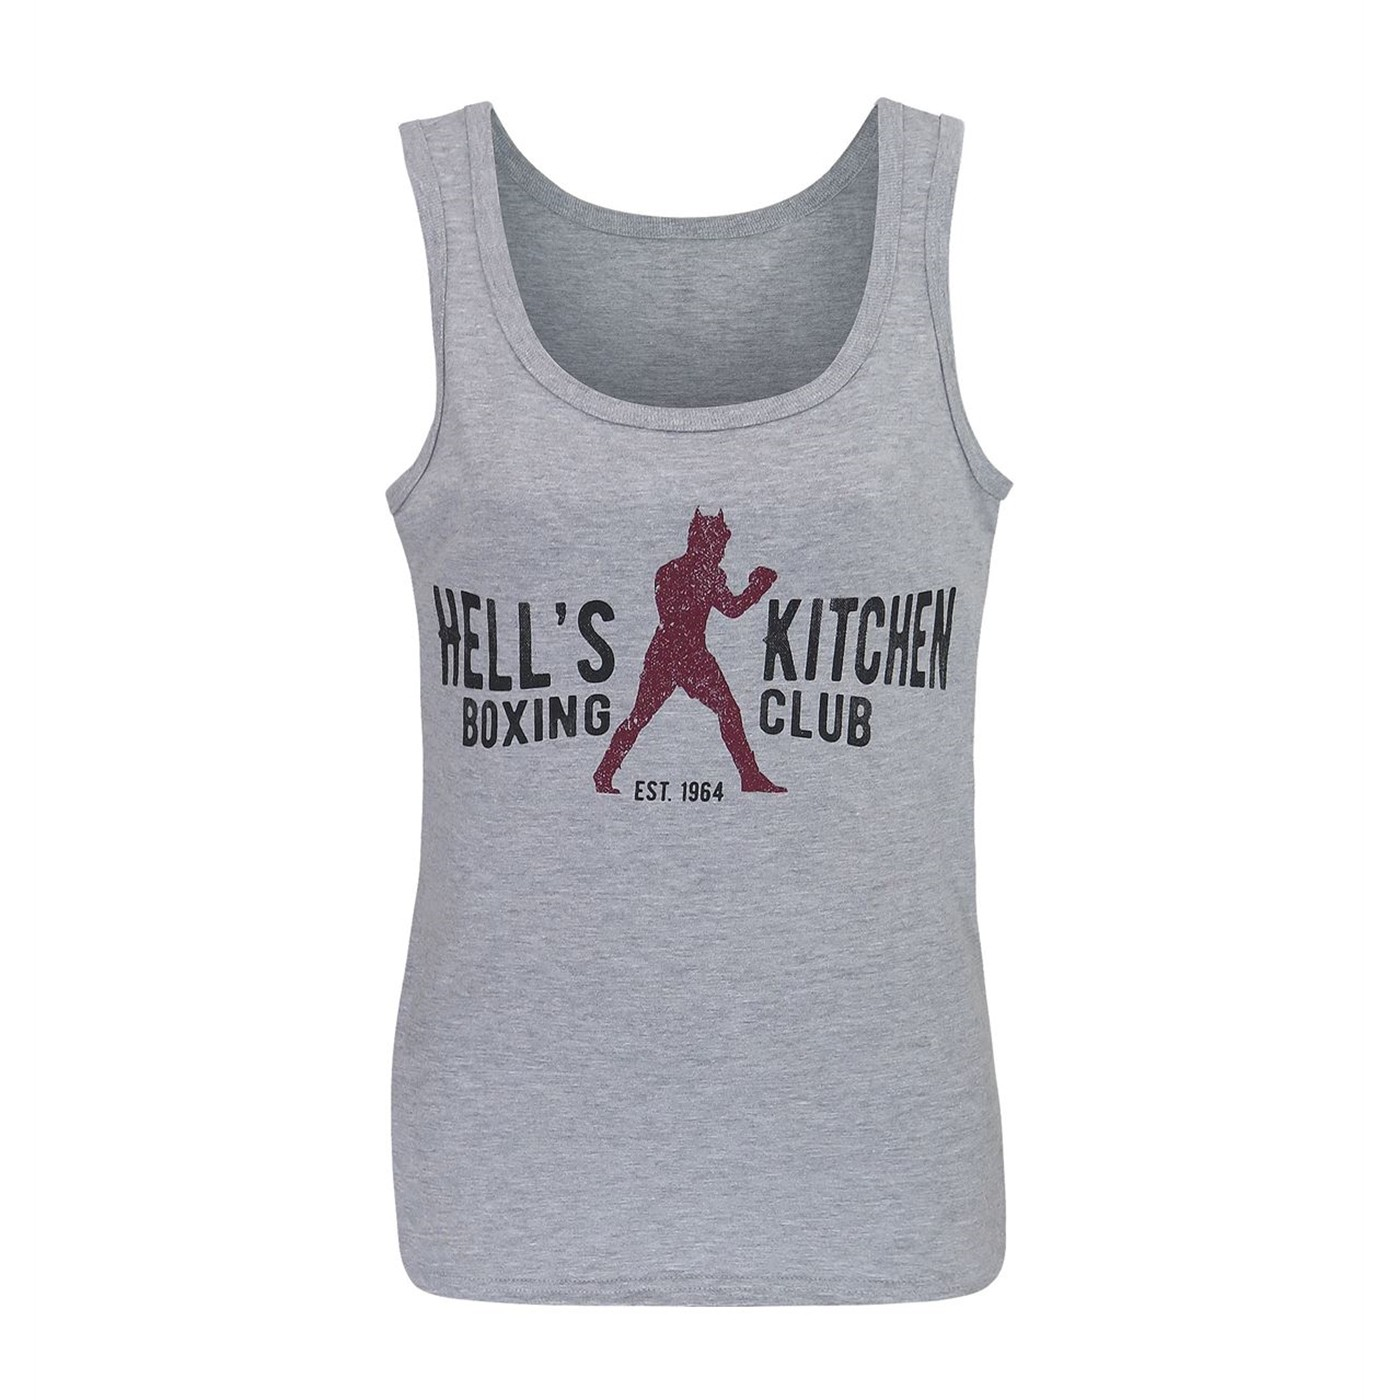 Hell's Kitchen Boxing Club Women's Tank Top